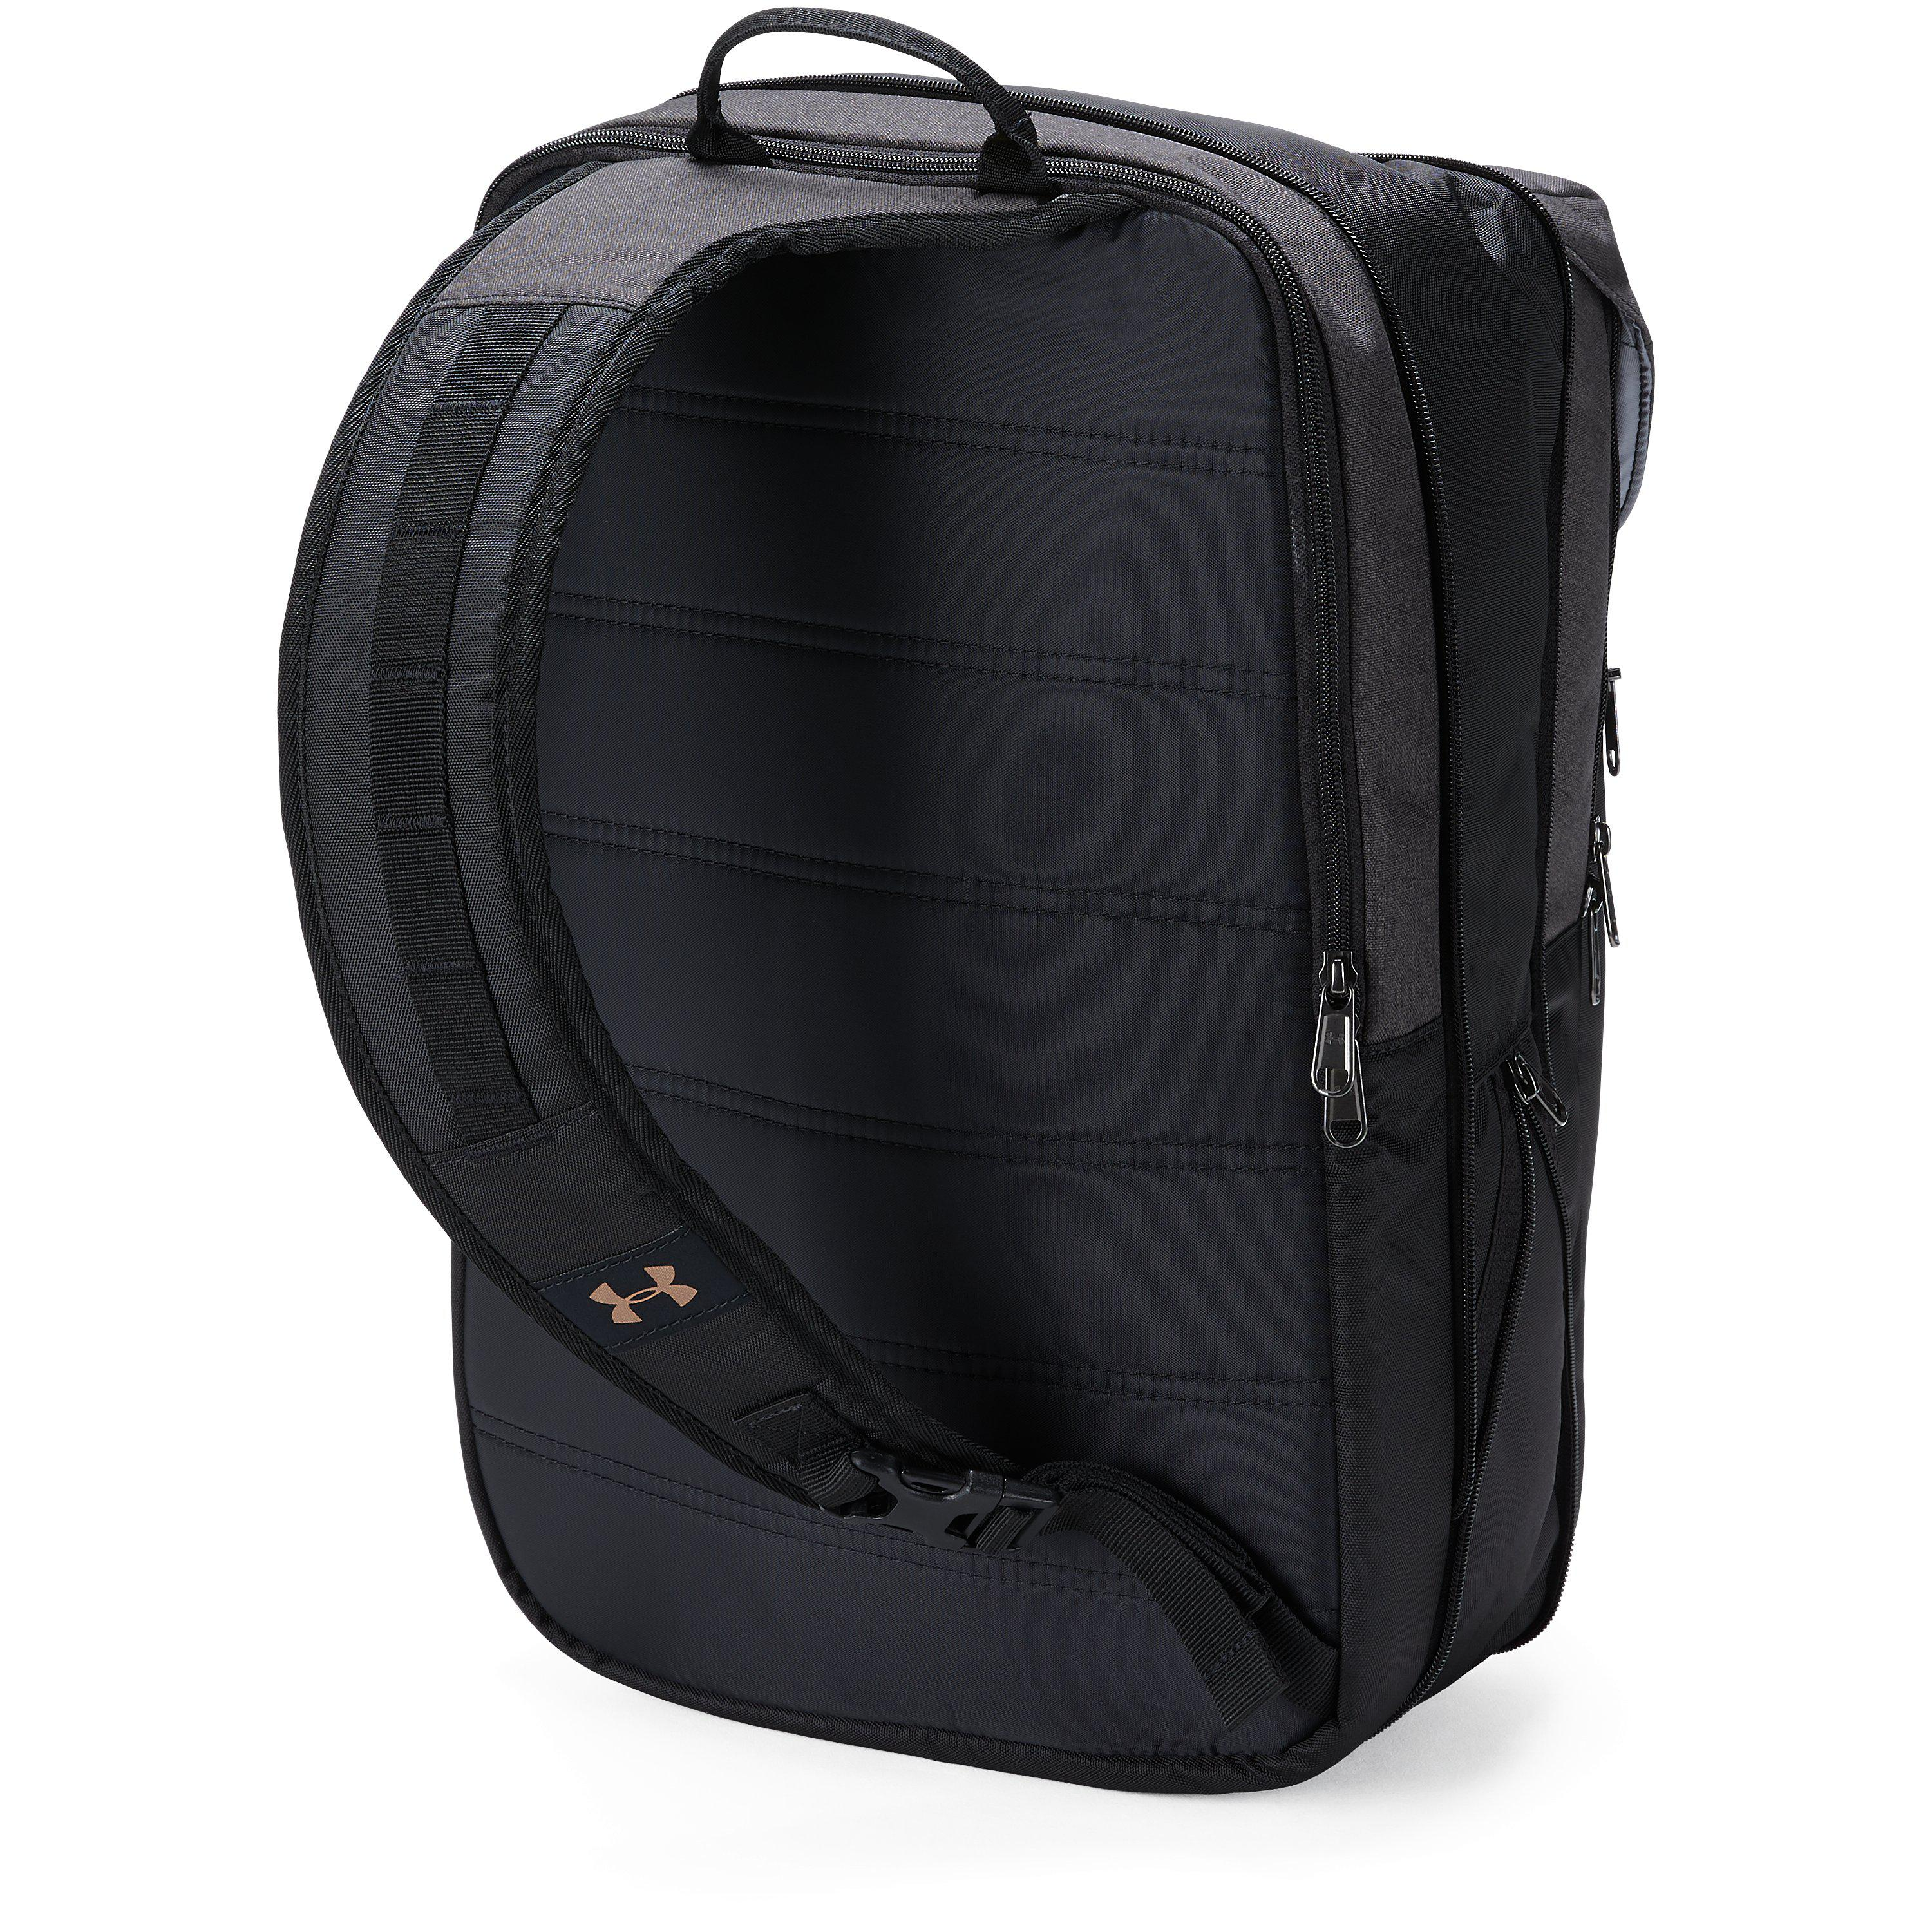 35627908bc Lyst - Under Armour Compel Sling 2.0 Backpack in Black for Men